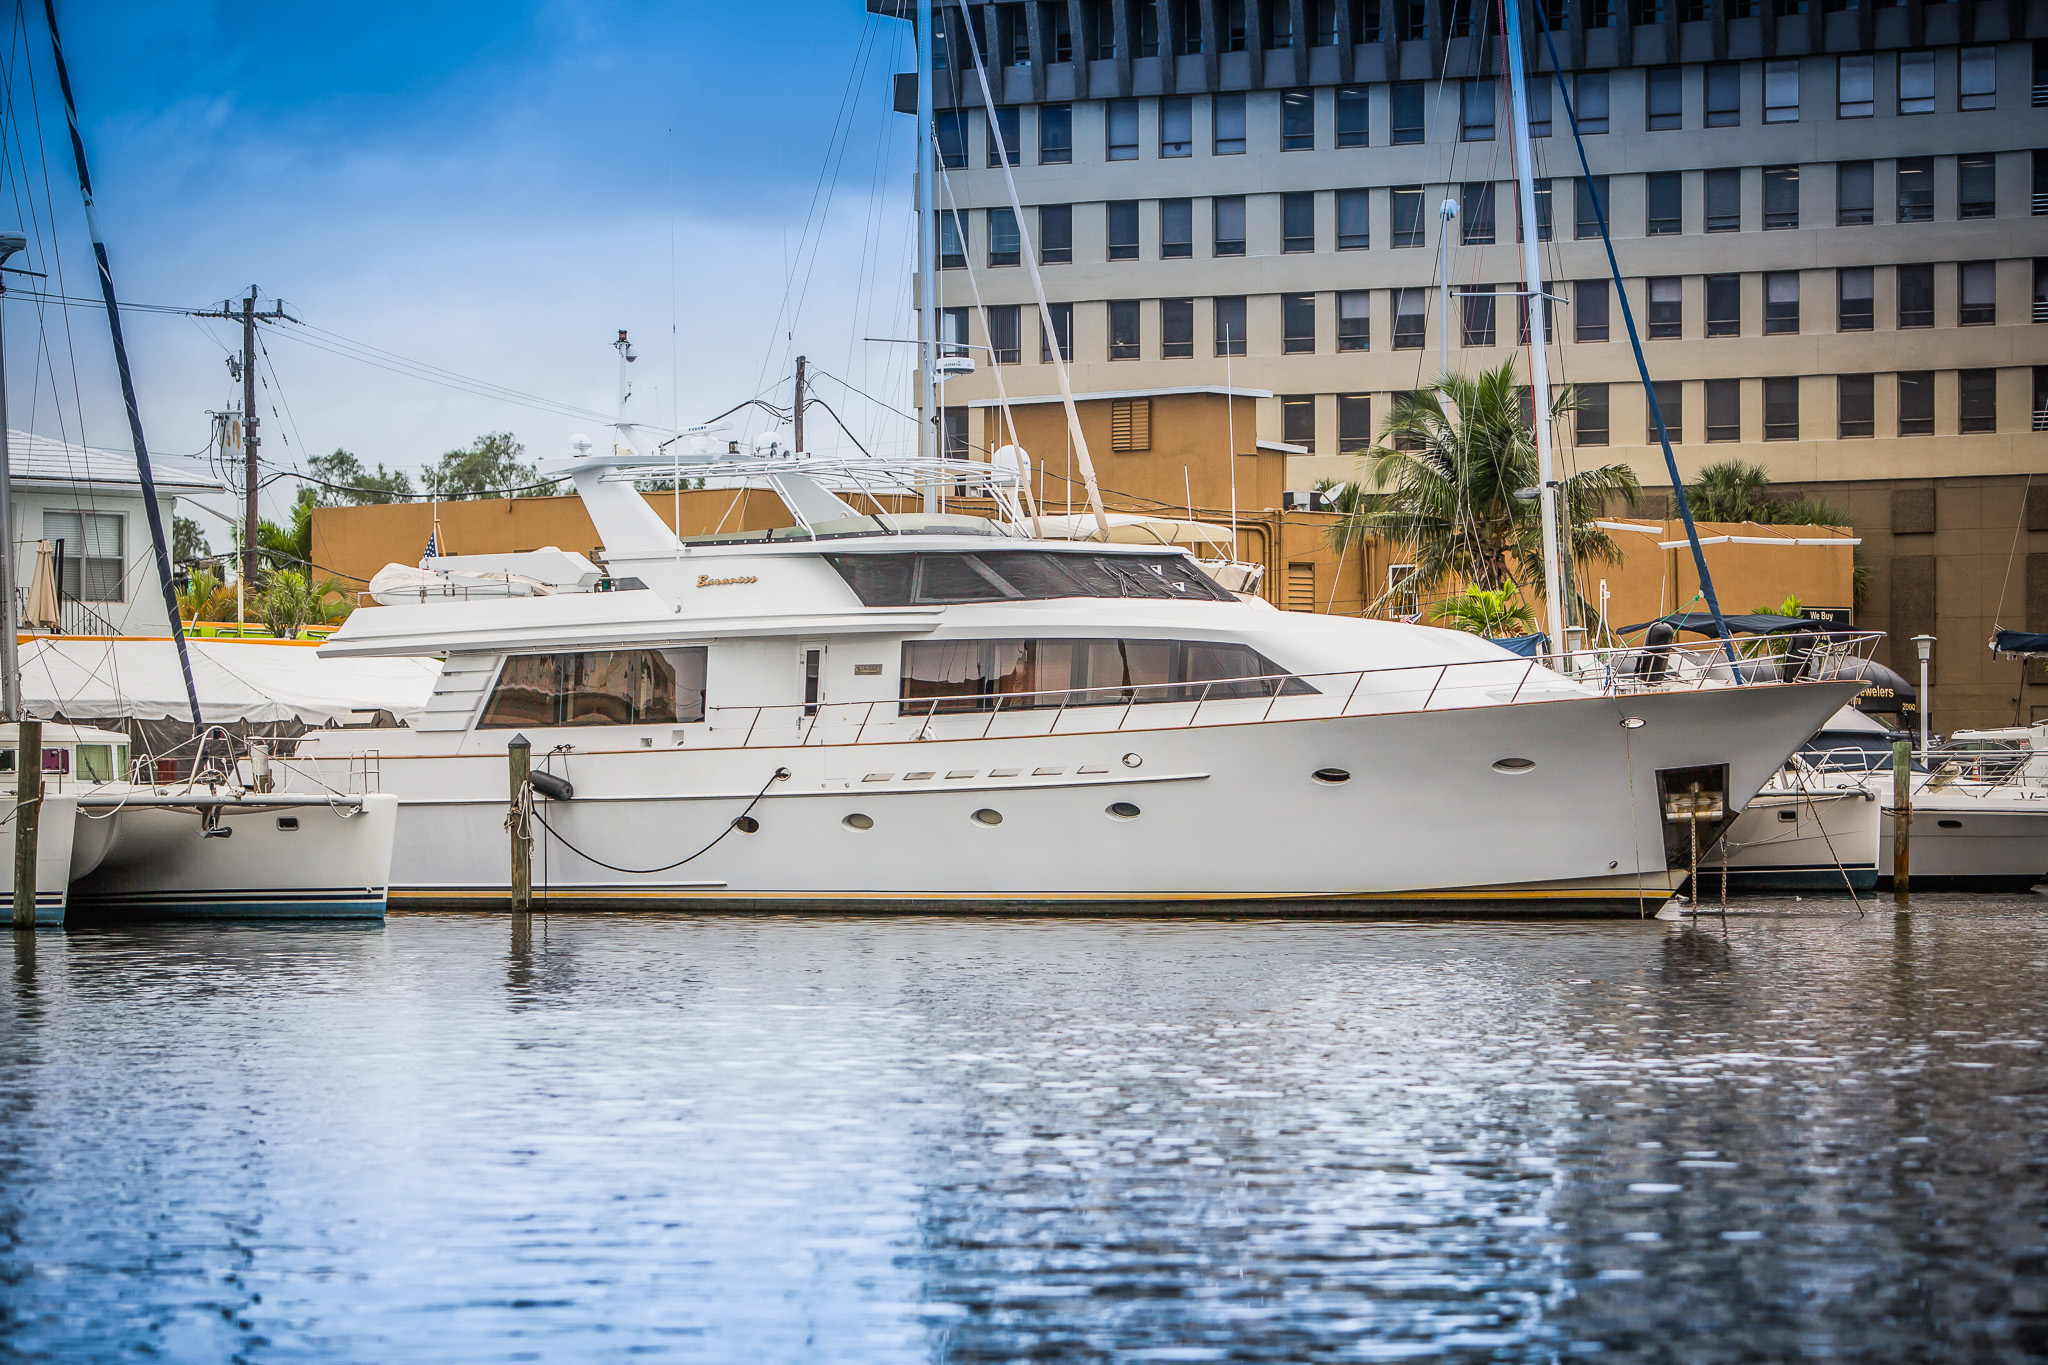 The Baroness Yacht